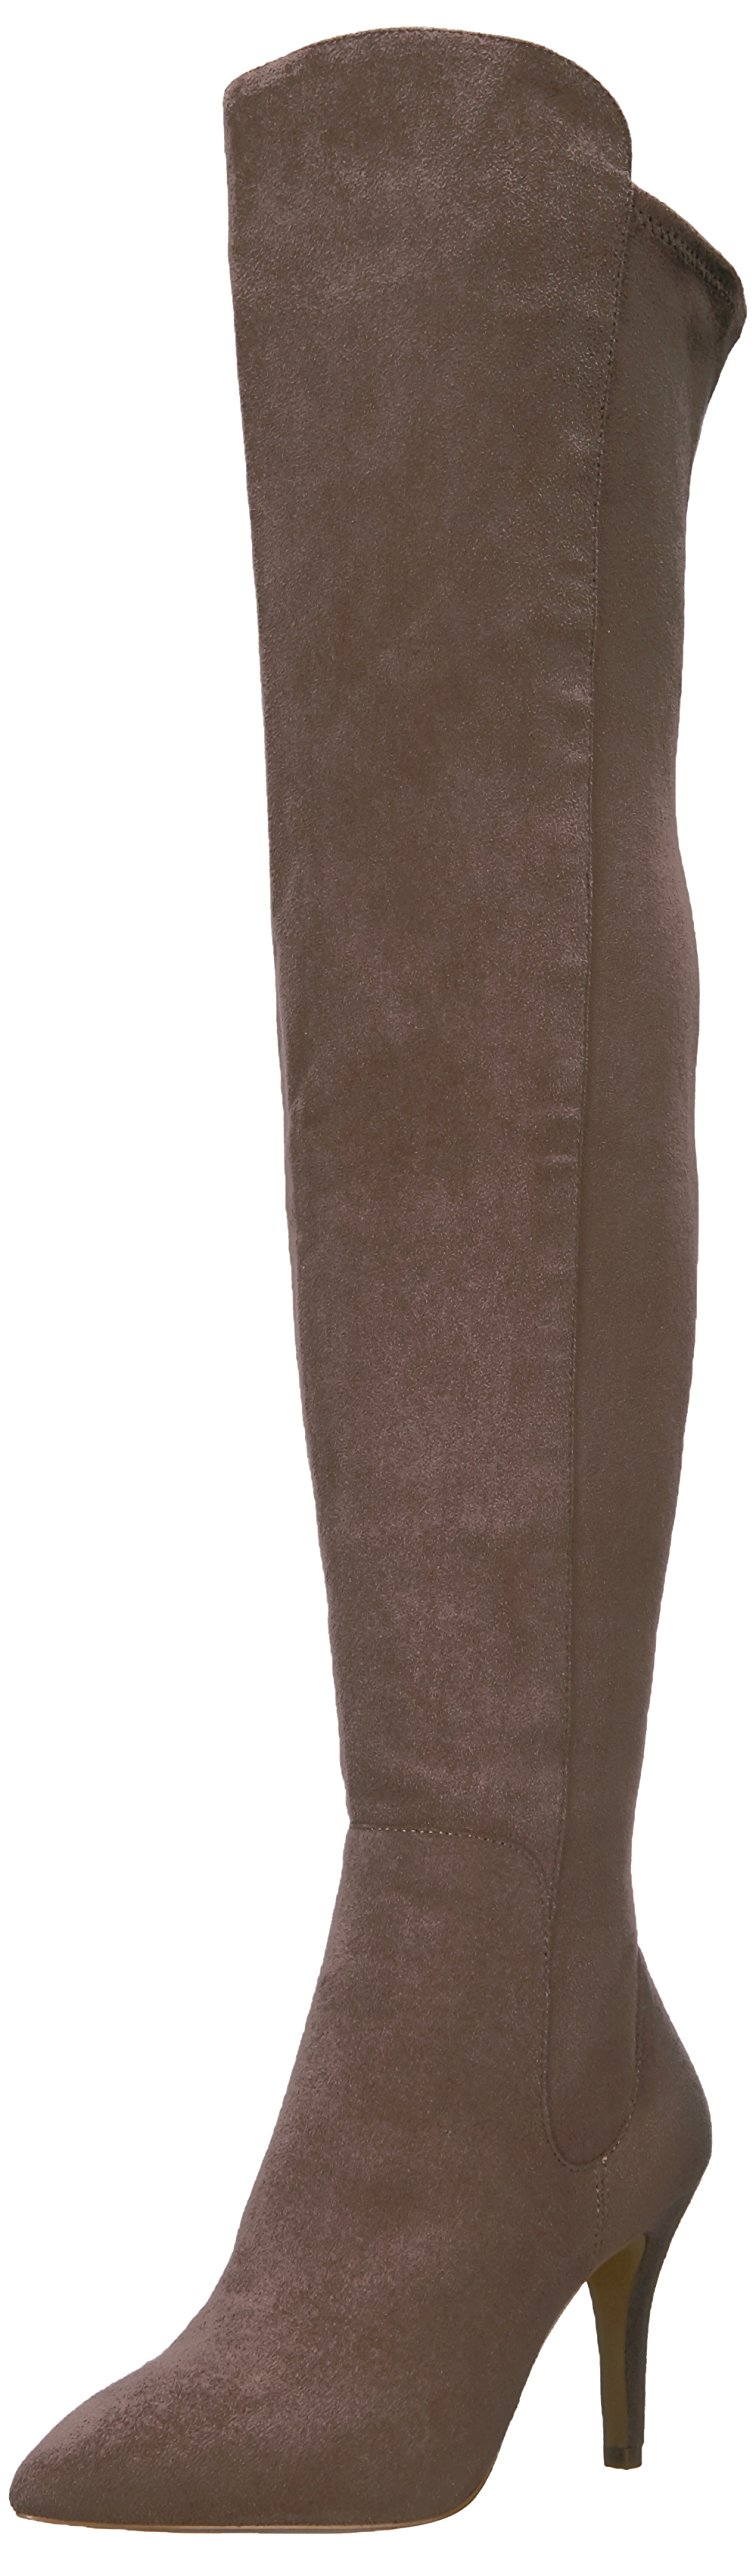 Style by Charles David Women's Vince Fashion Boot, Taupe, 7 Medium US